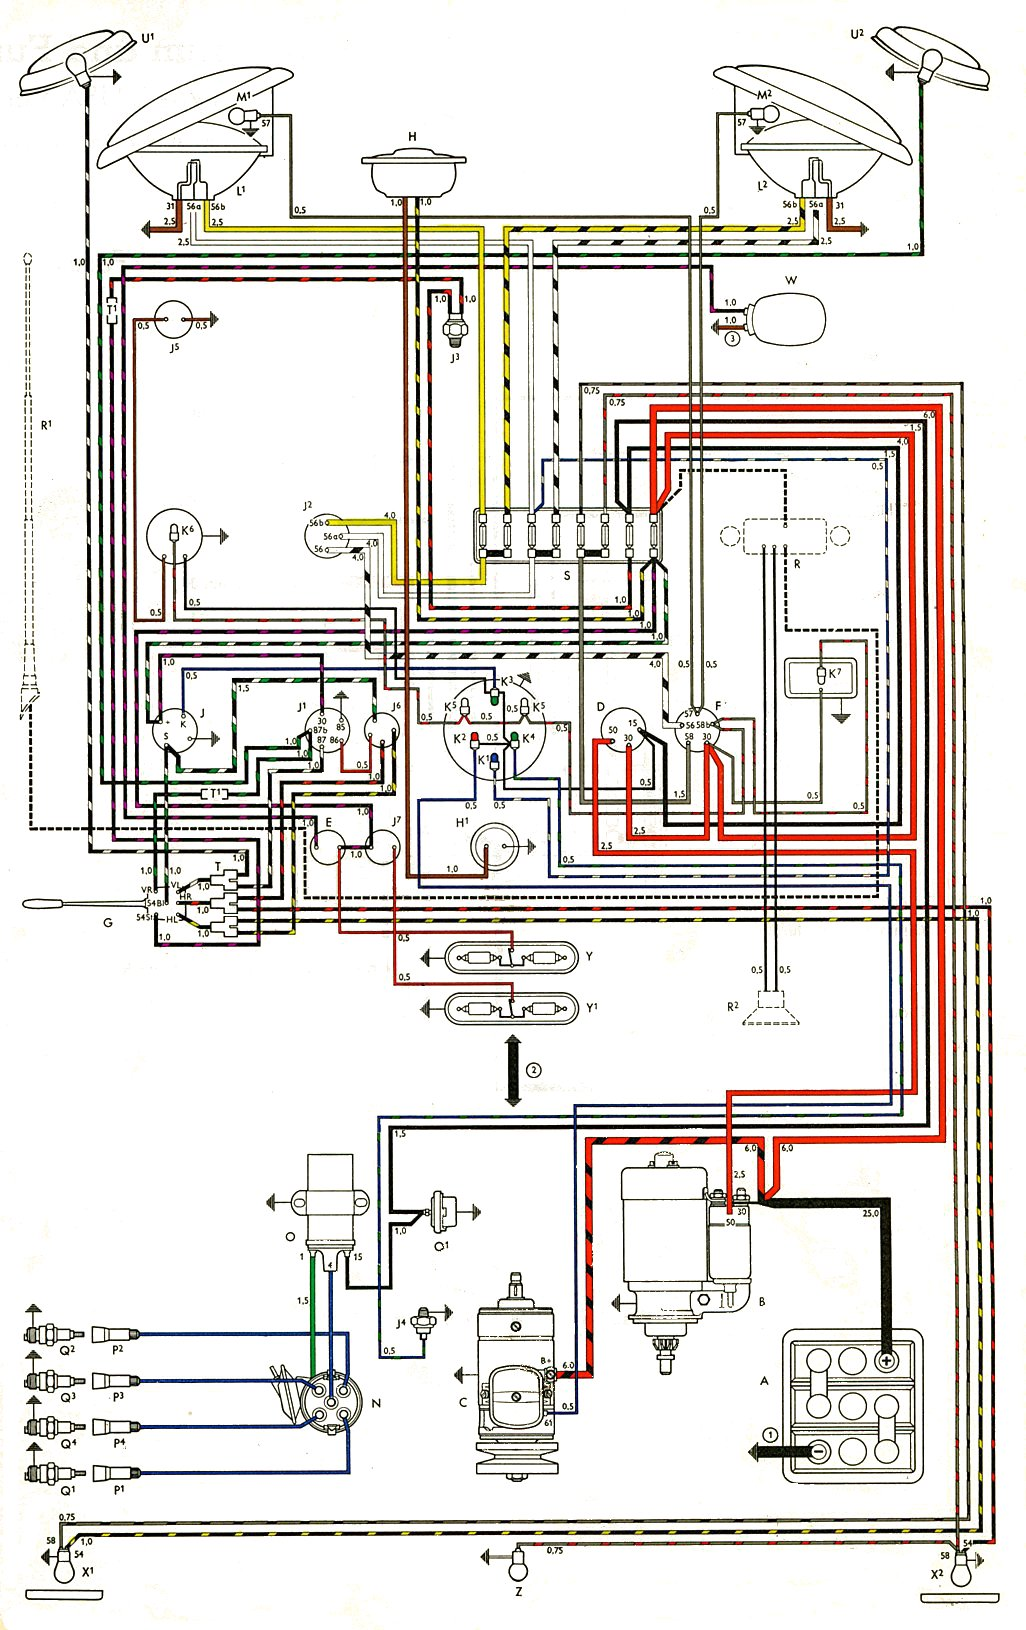 1960 vw bug wiring schematics online 1968 vw fuse diagram wiring diagram